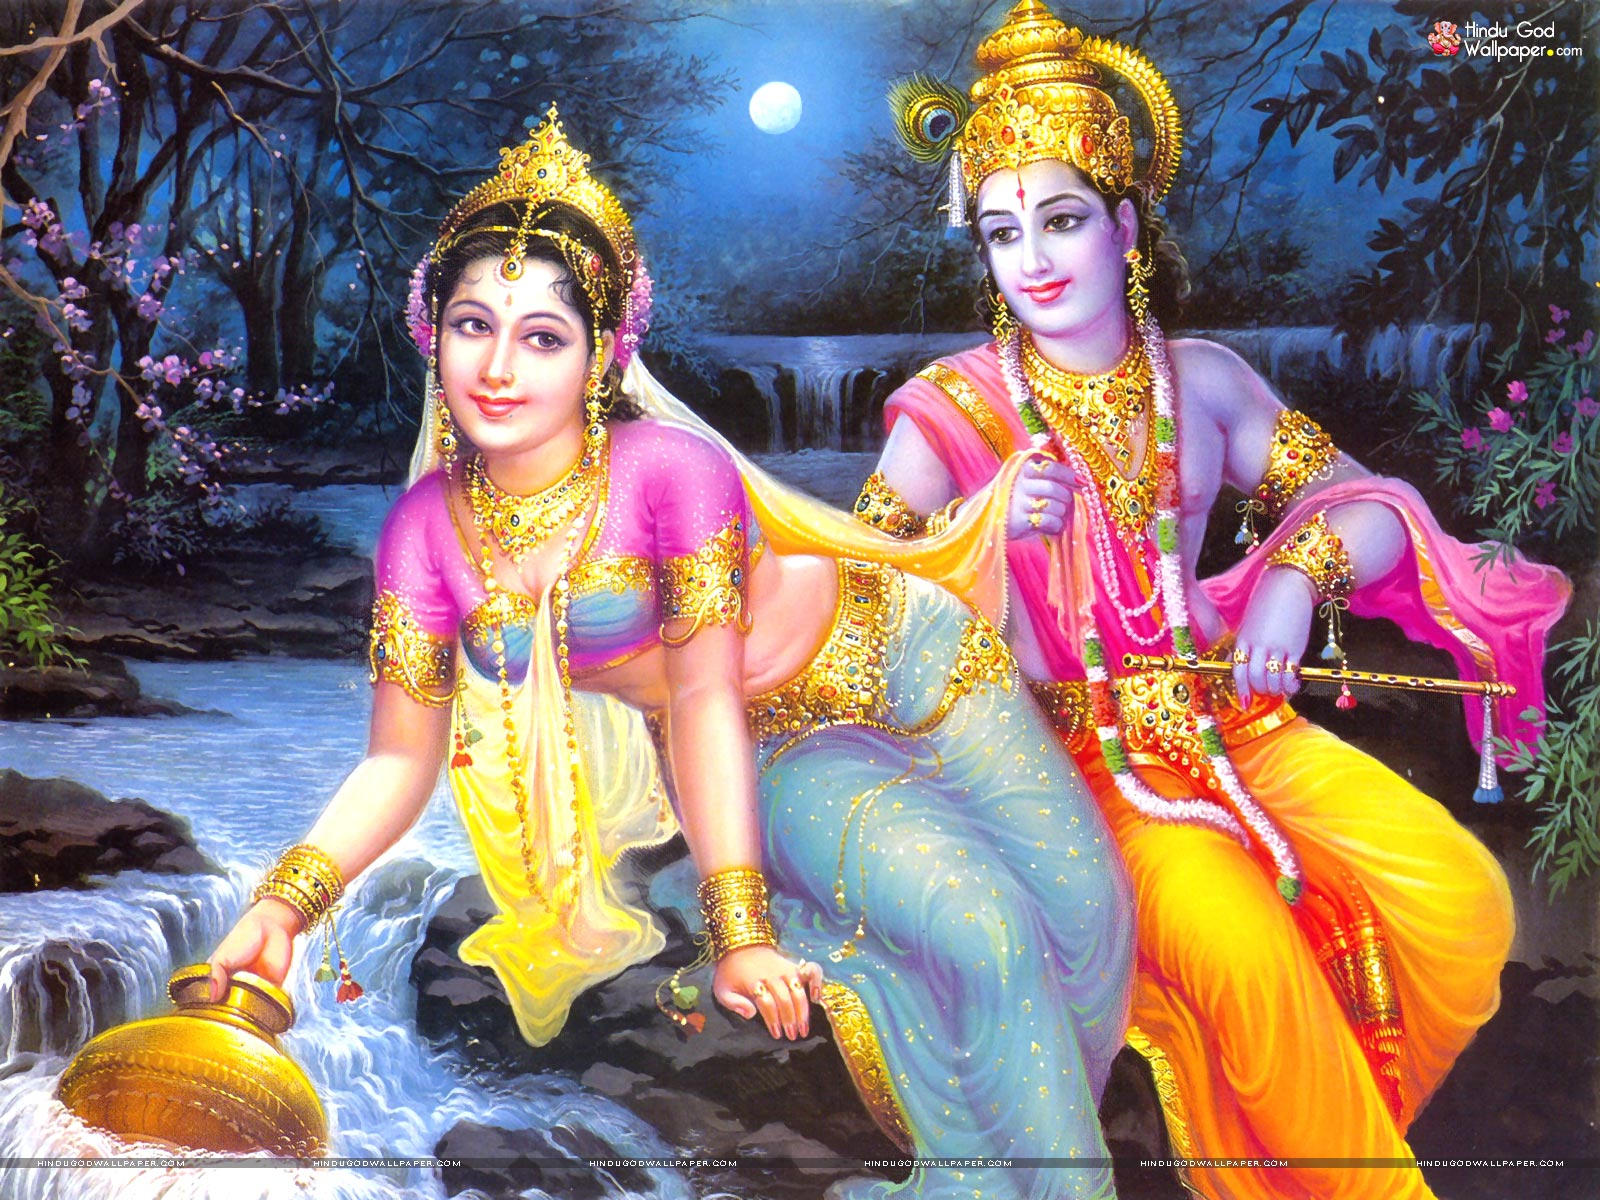 FREE-Download-Radha-Krishna-wallpaper-wp5604993